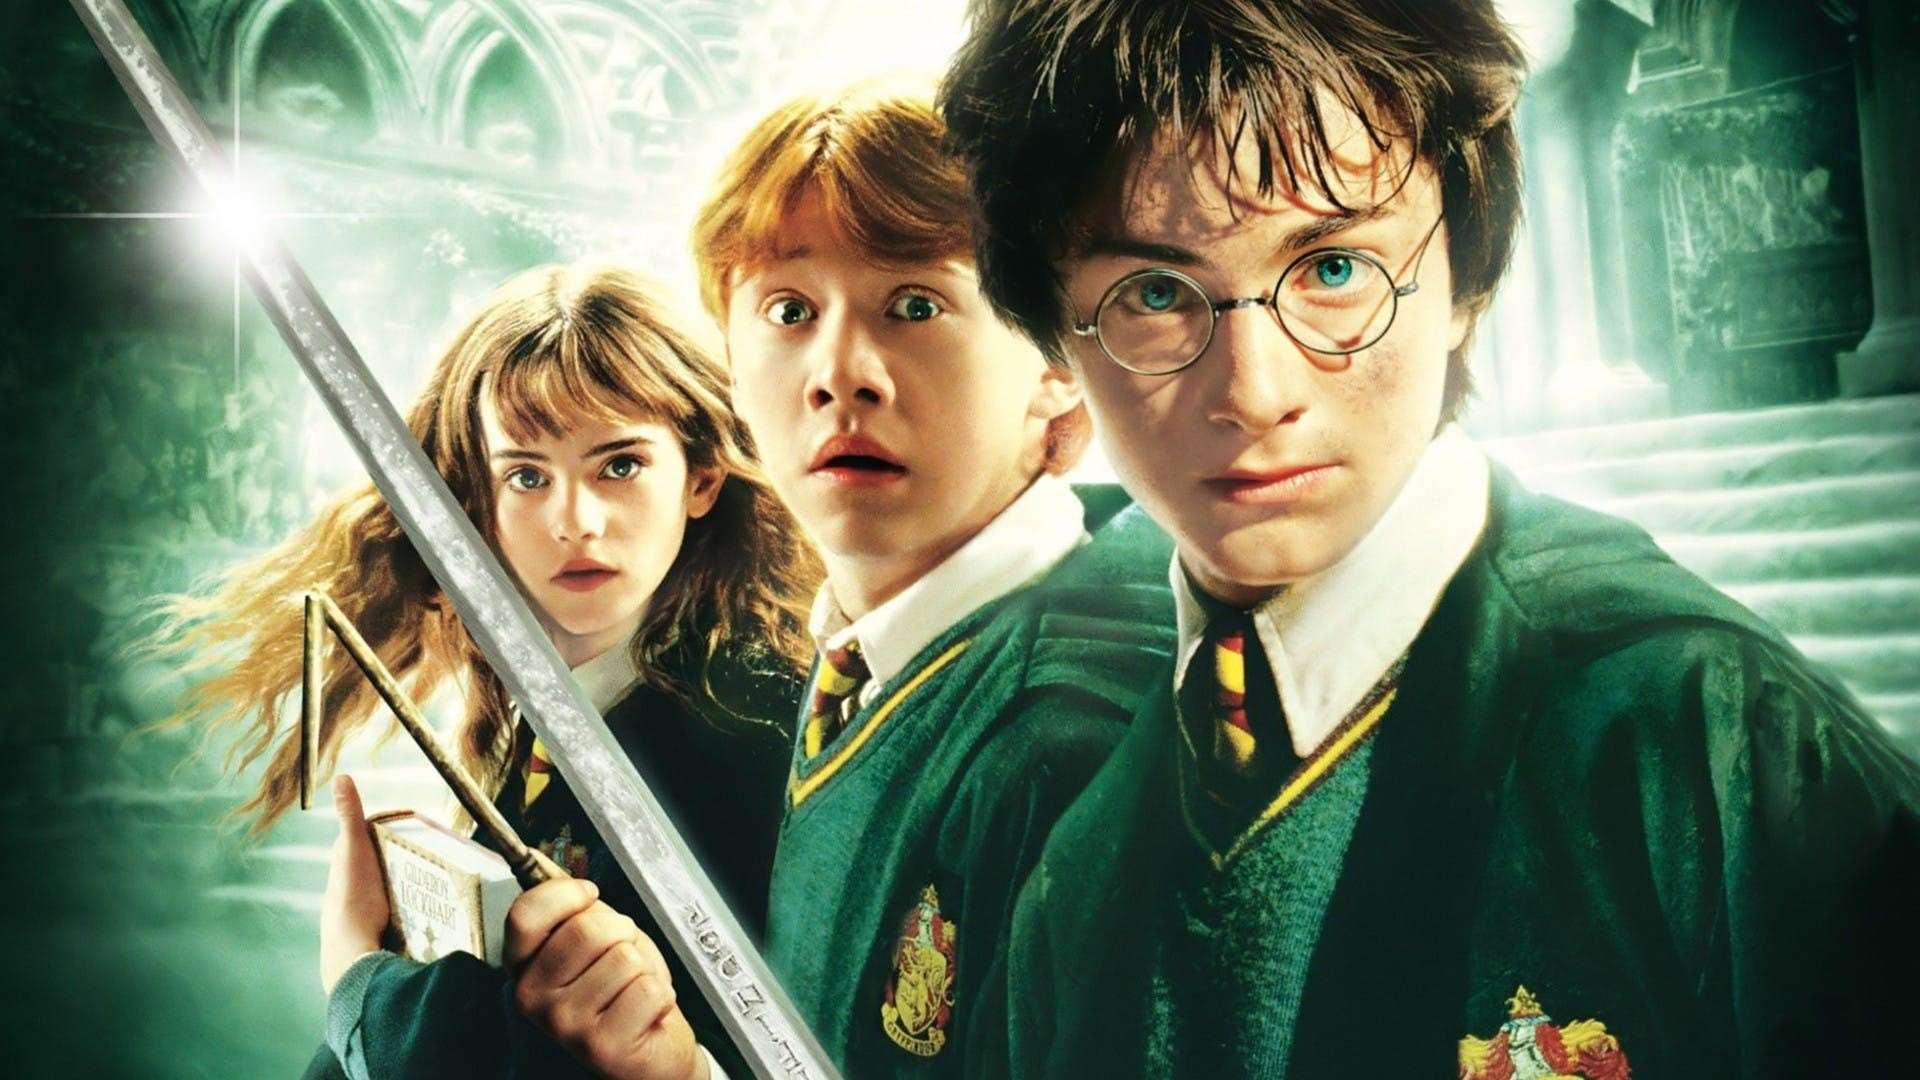 Harry Potter Book Night is held on February 6